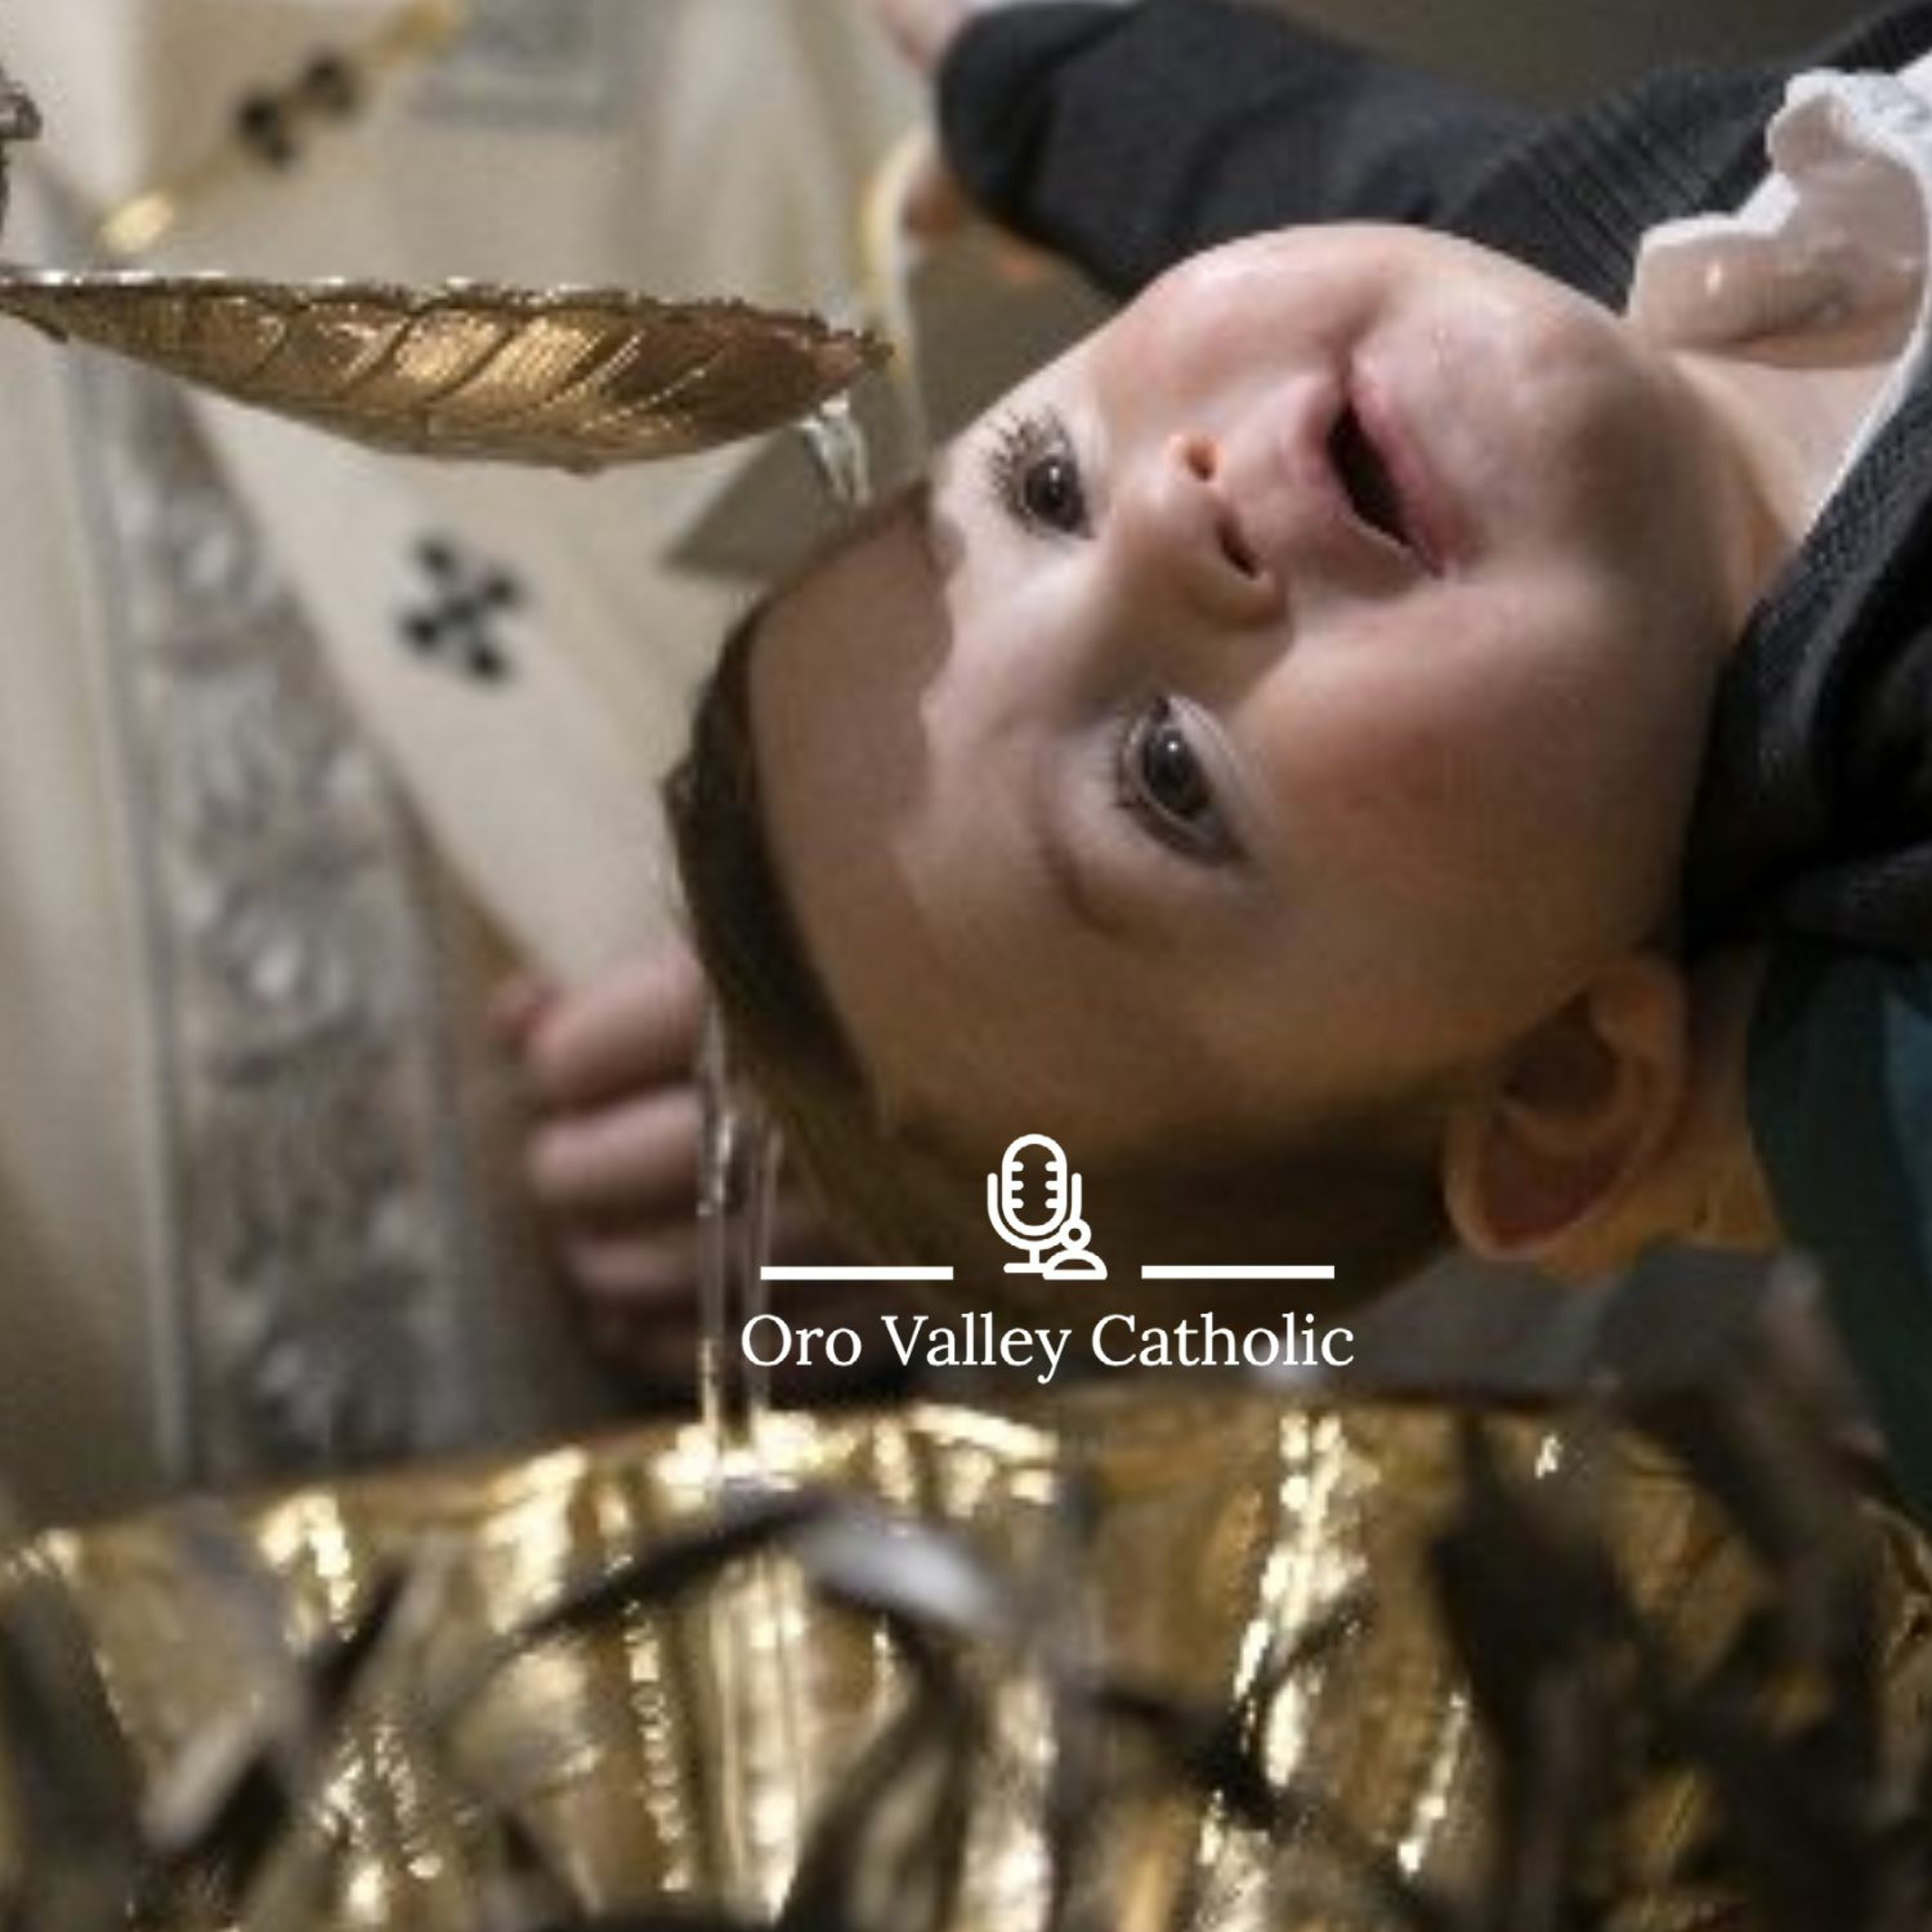 Preparation and Fulfillment - The Sacrament of Baptism